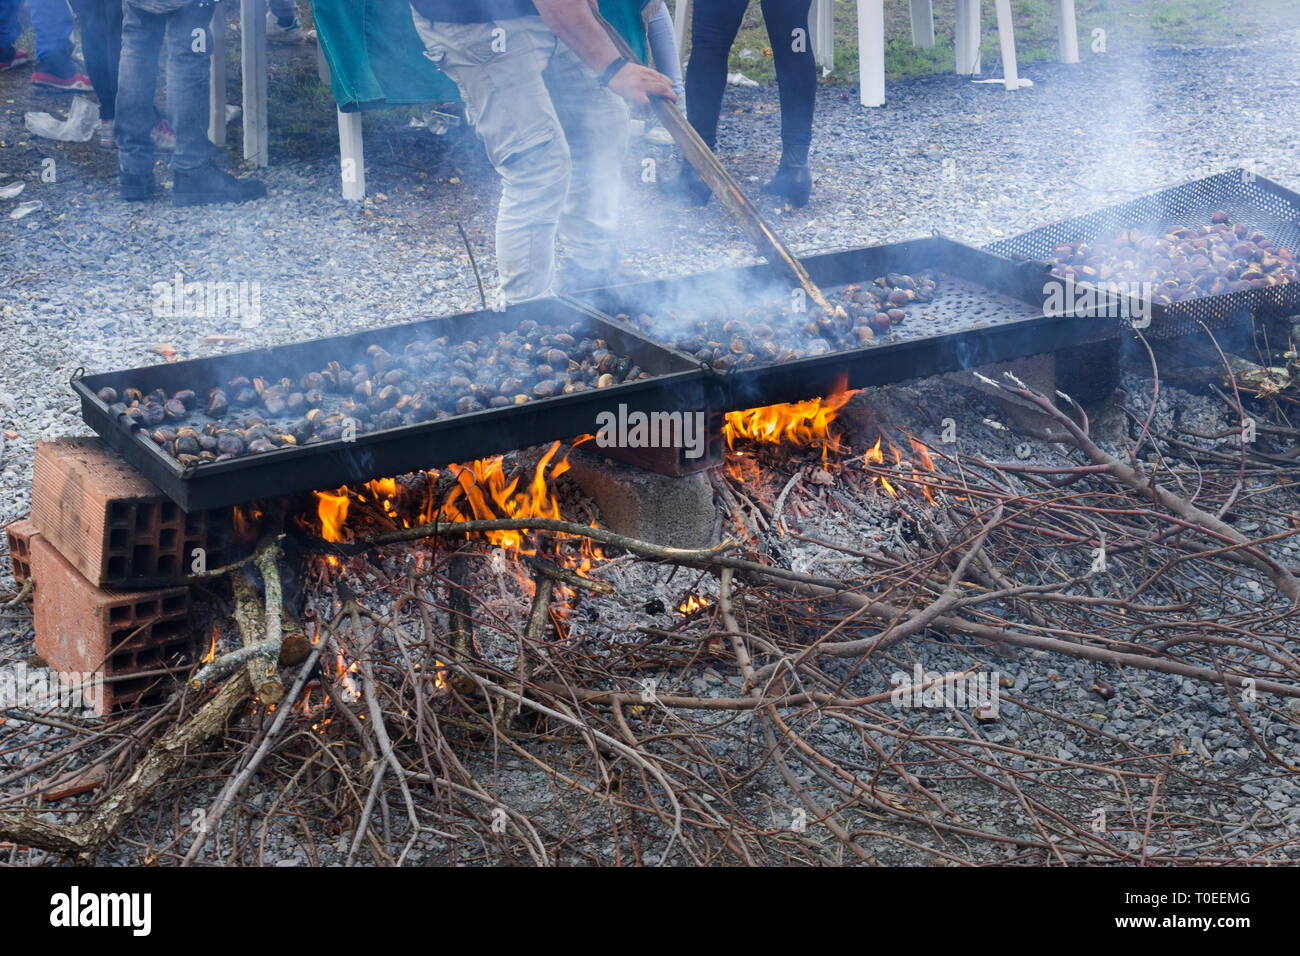 A hand-picked batch of raw sweet chestnuts getting roasted on an open fire in Livadi, during the annual festival.Thessalonica, Thermi, Greece - Stock Image